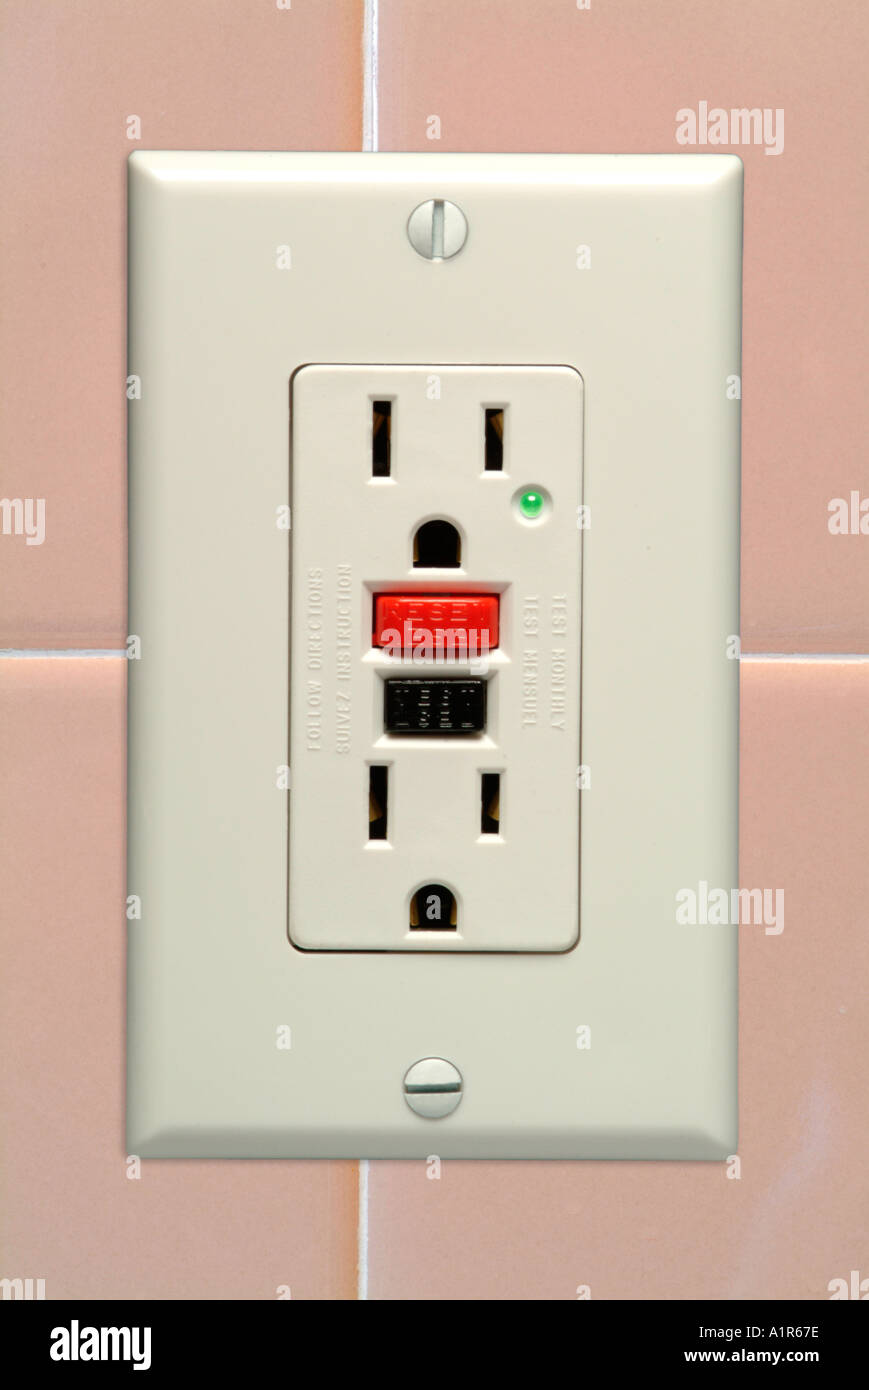 a ground fault circuit interrupter or gfci outlet stock ground fault circuit interrupter breaker installation definitions describes a circuit breaker ground fault circuit interrupter